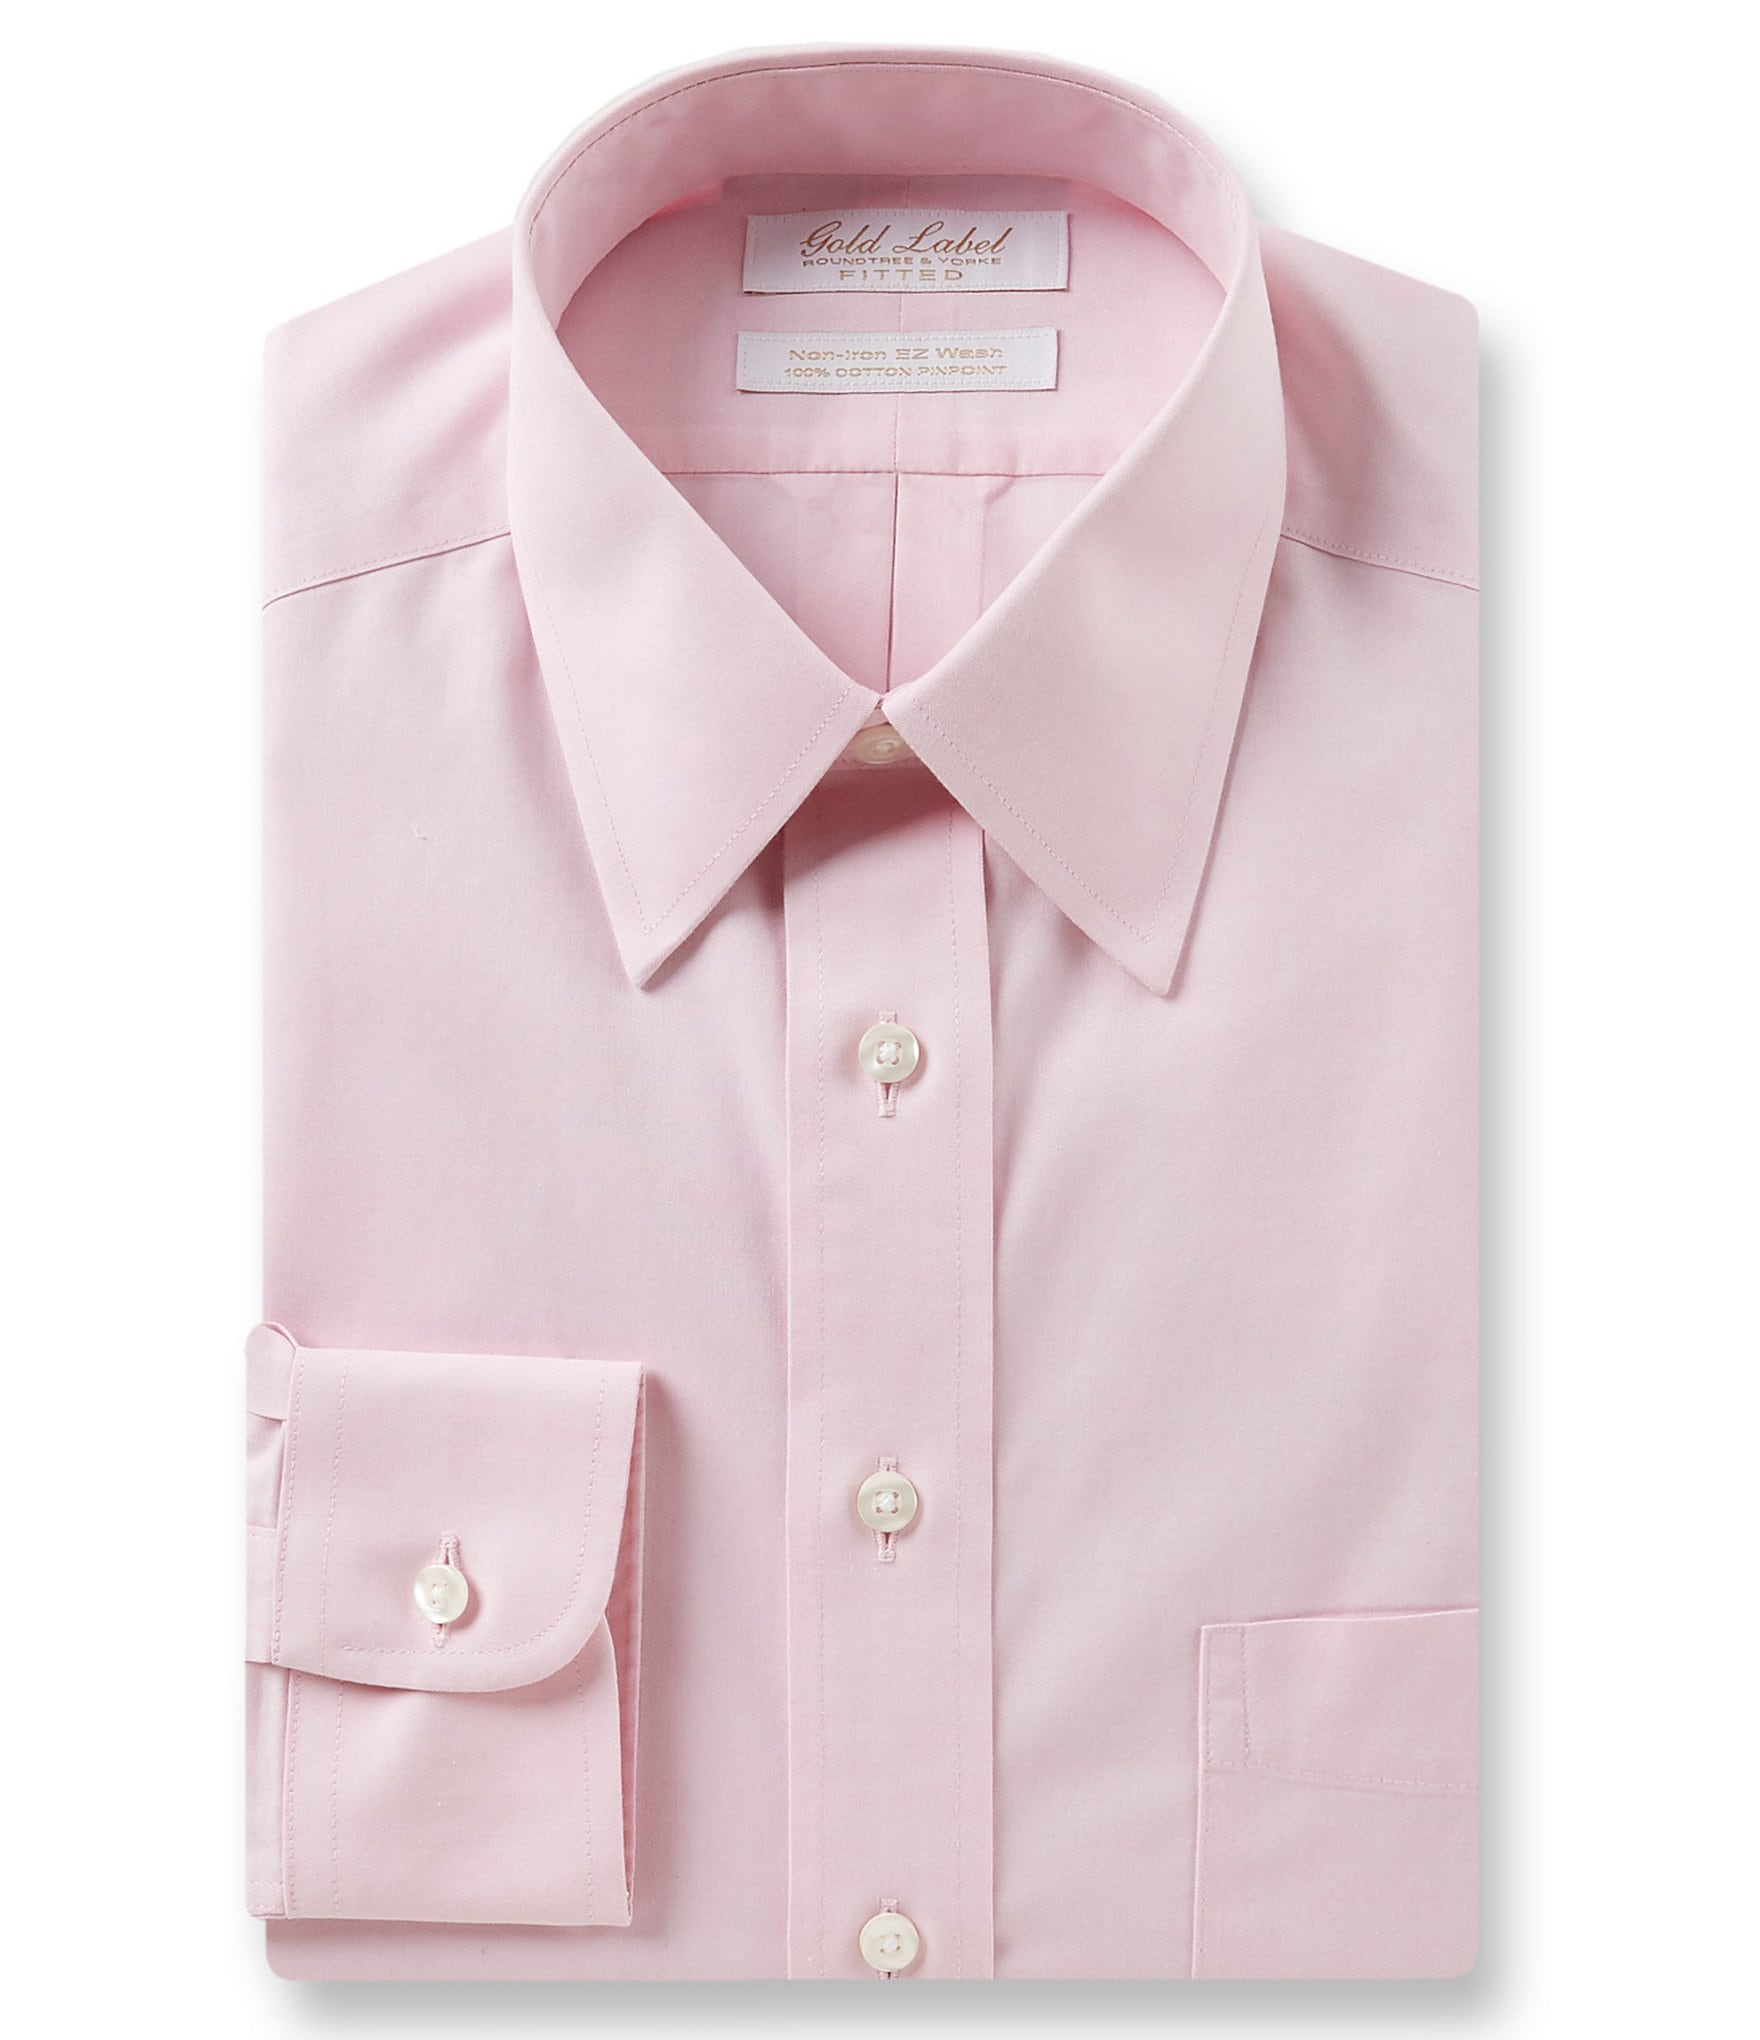 Fitted Mens Dress Shirts Dillards